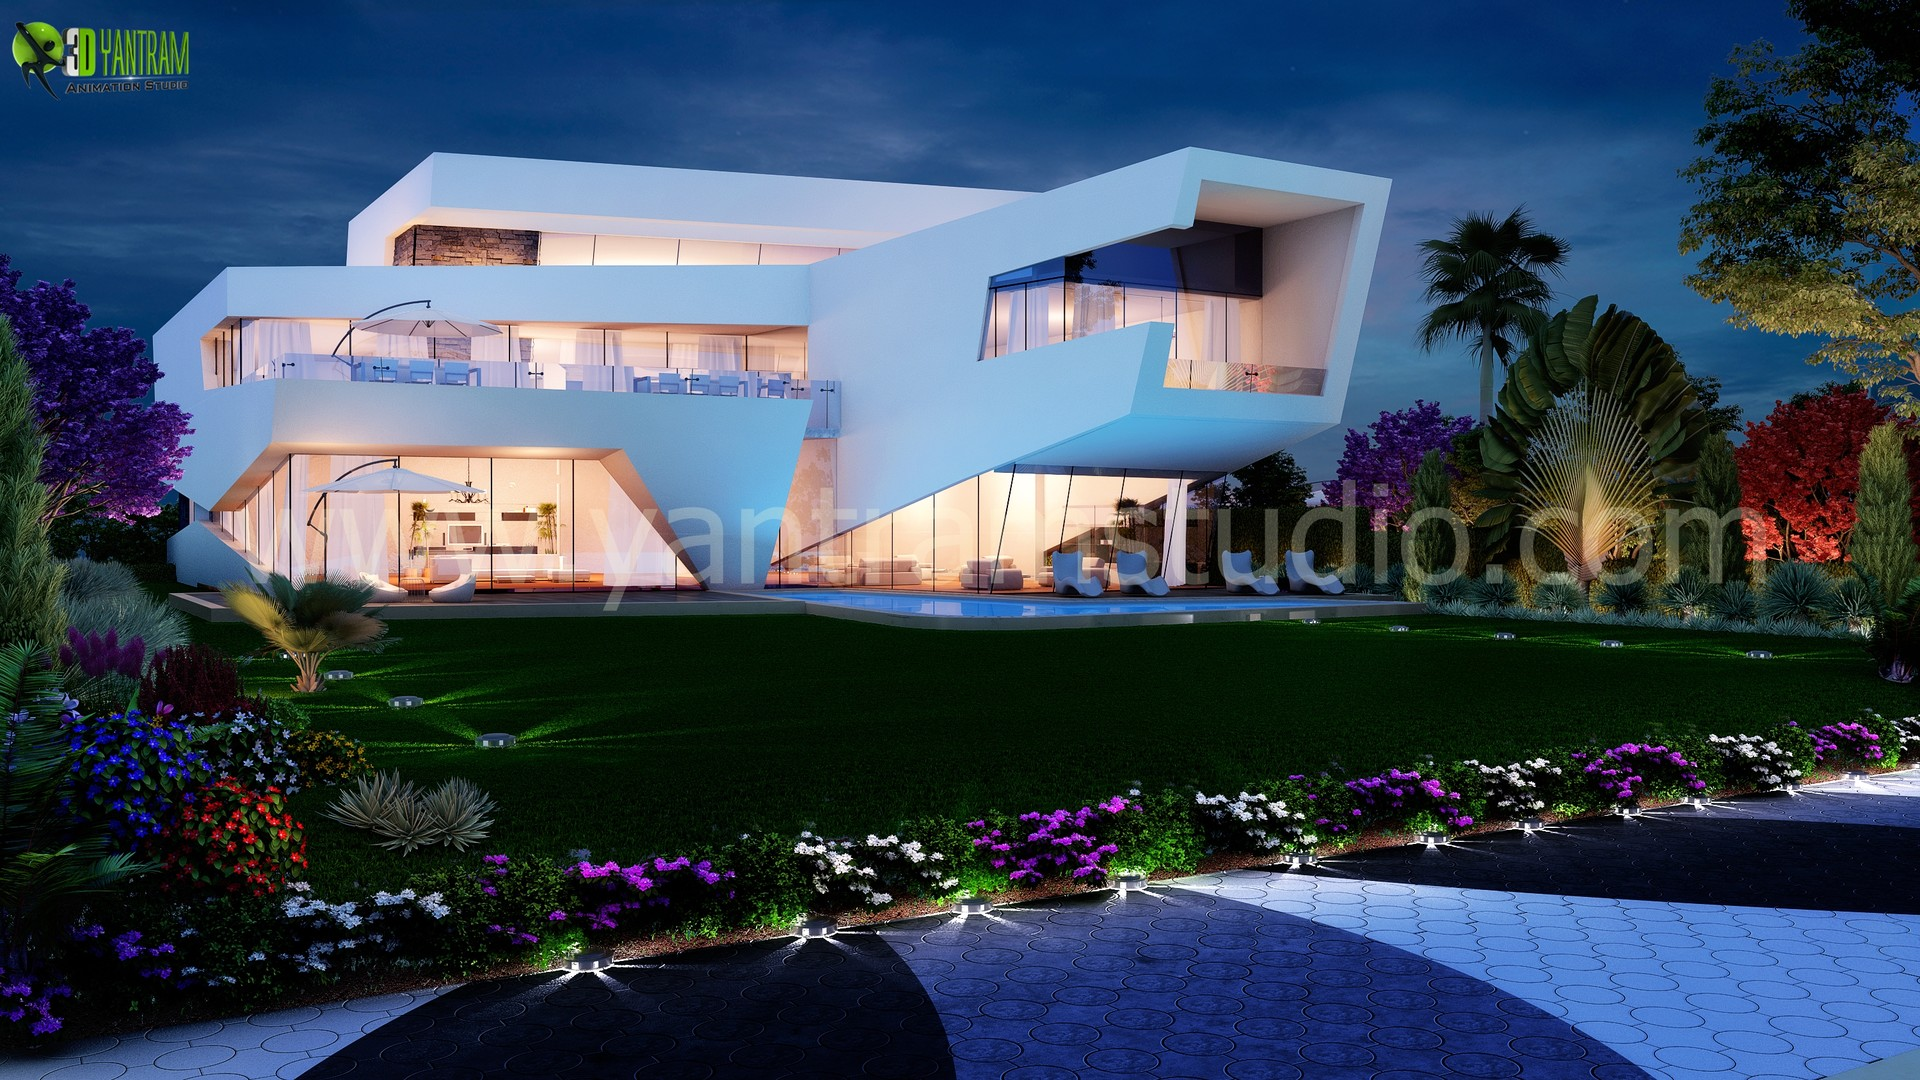 Yantram Studio Ultra Modern 3d Home Exterior Design Rendering Usa